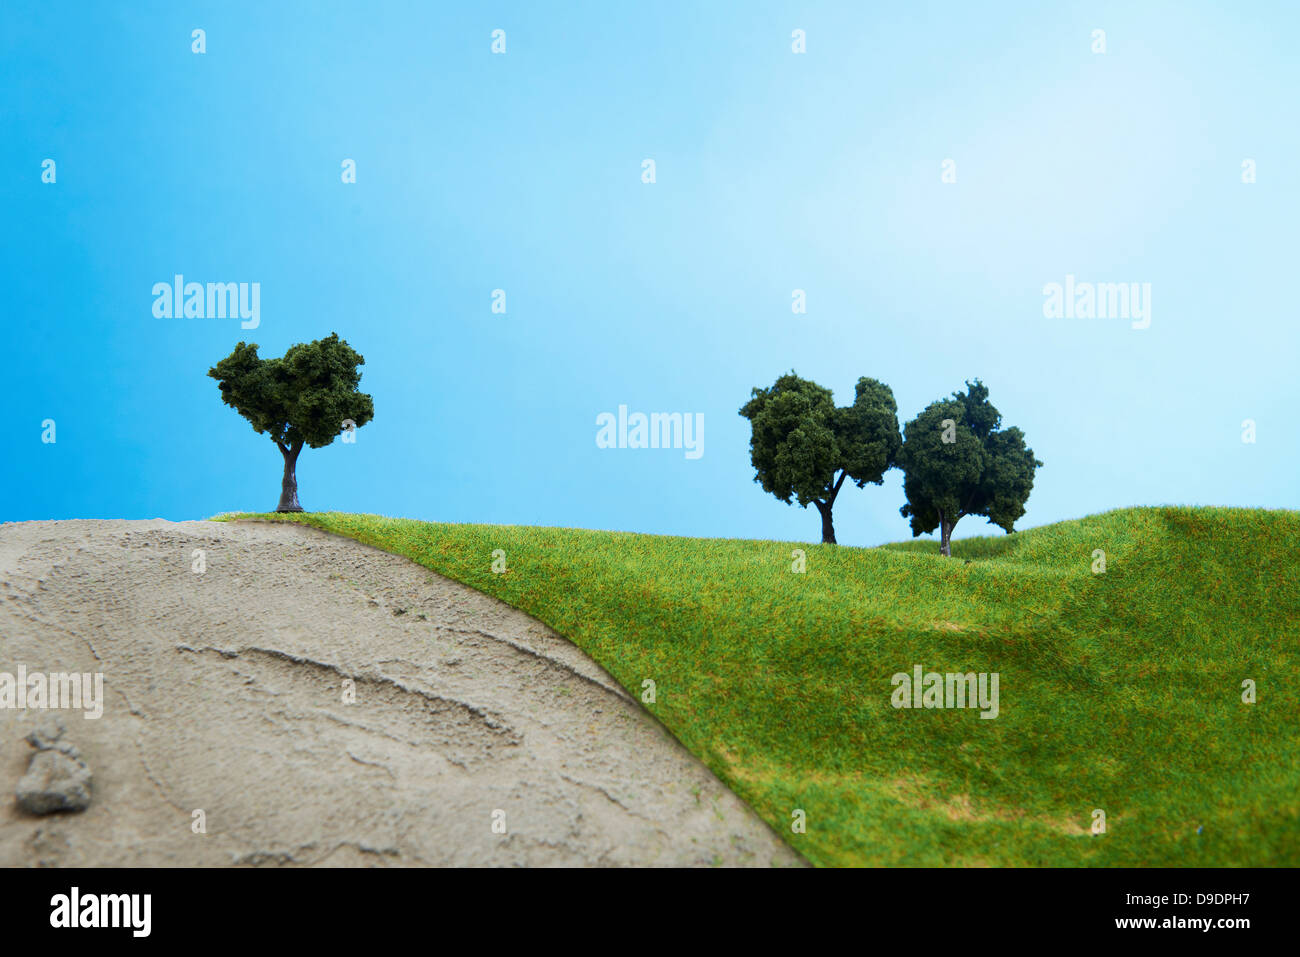 Model Trees Stock Photos & Model Trees Stock Images - Alamy